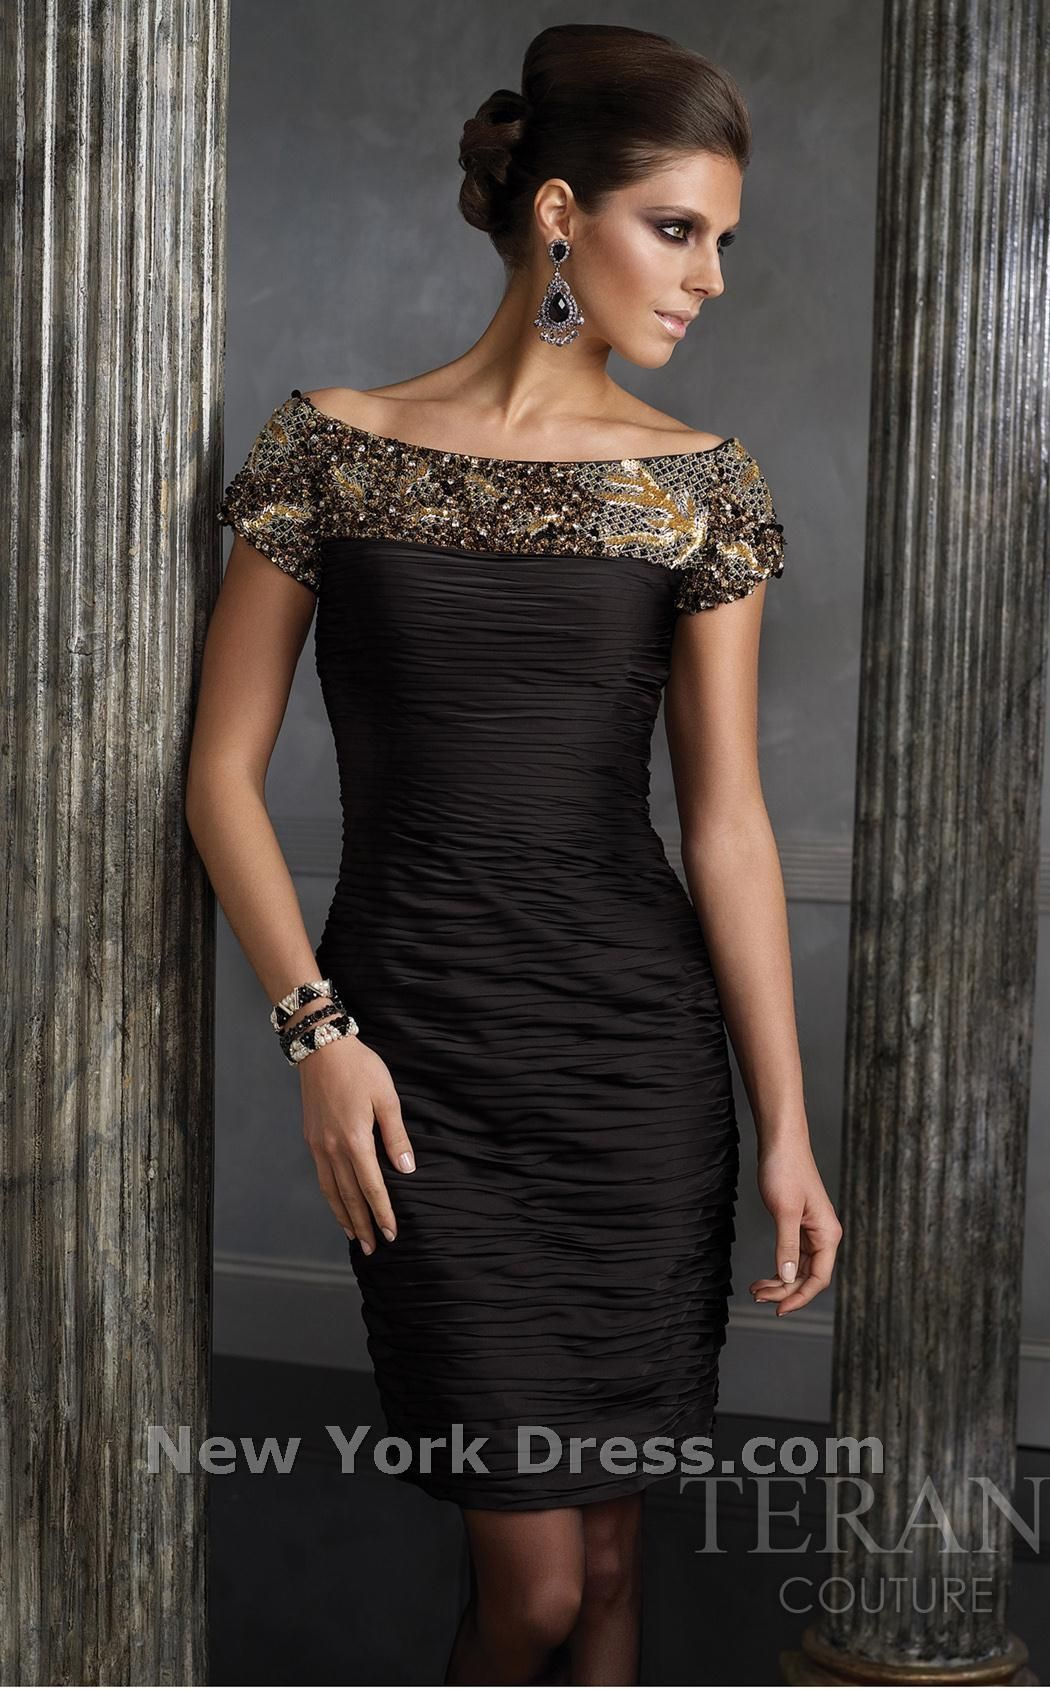 Terani 35056C thumbnail ruched black off the shoulder cocktail dress by Terani  newyorkdress.com